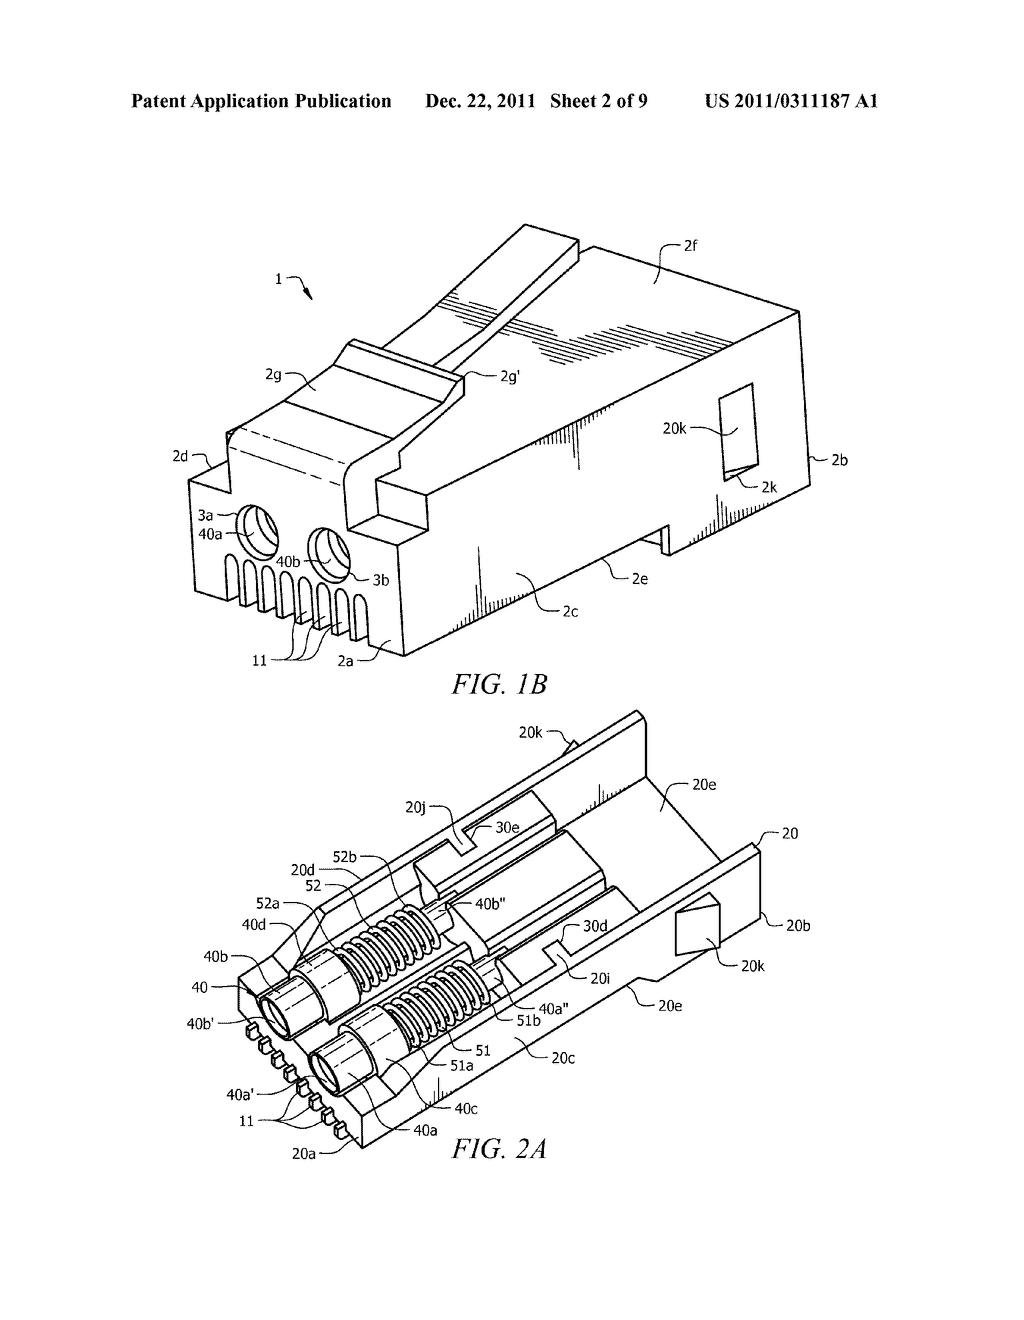 hight resolution of hybrid 8p8c rj 45 modular plug configured with both optical and electrical connections for providing both optical and electrical communications capabilities